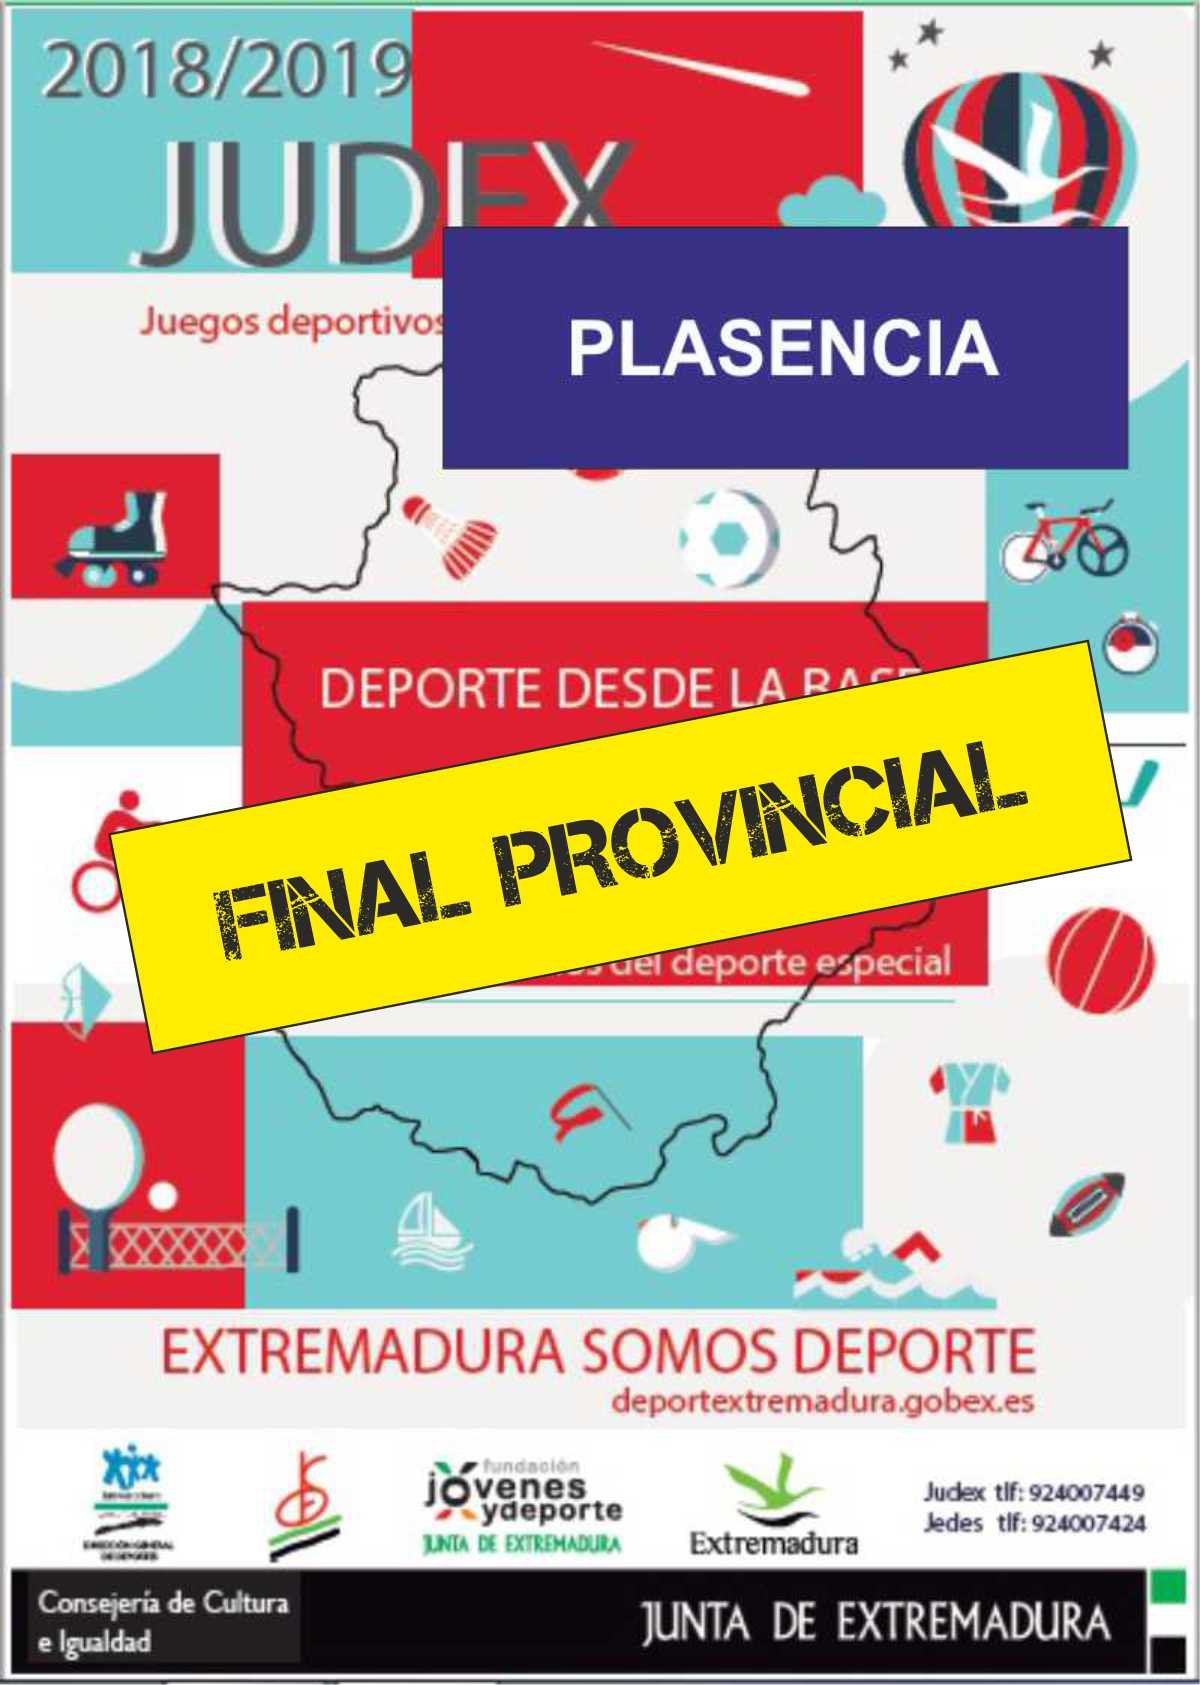 JUDEX Final provincial 2019 Plasencia